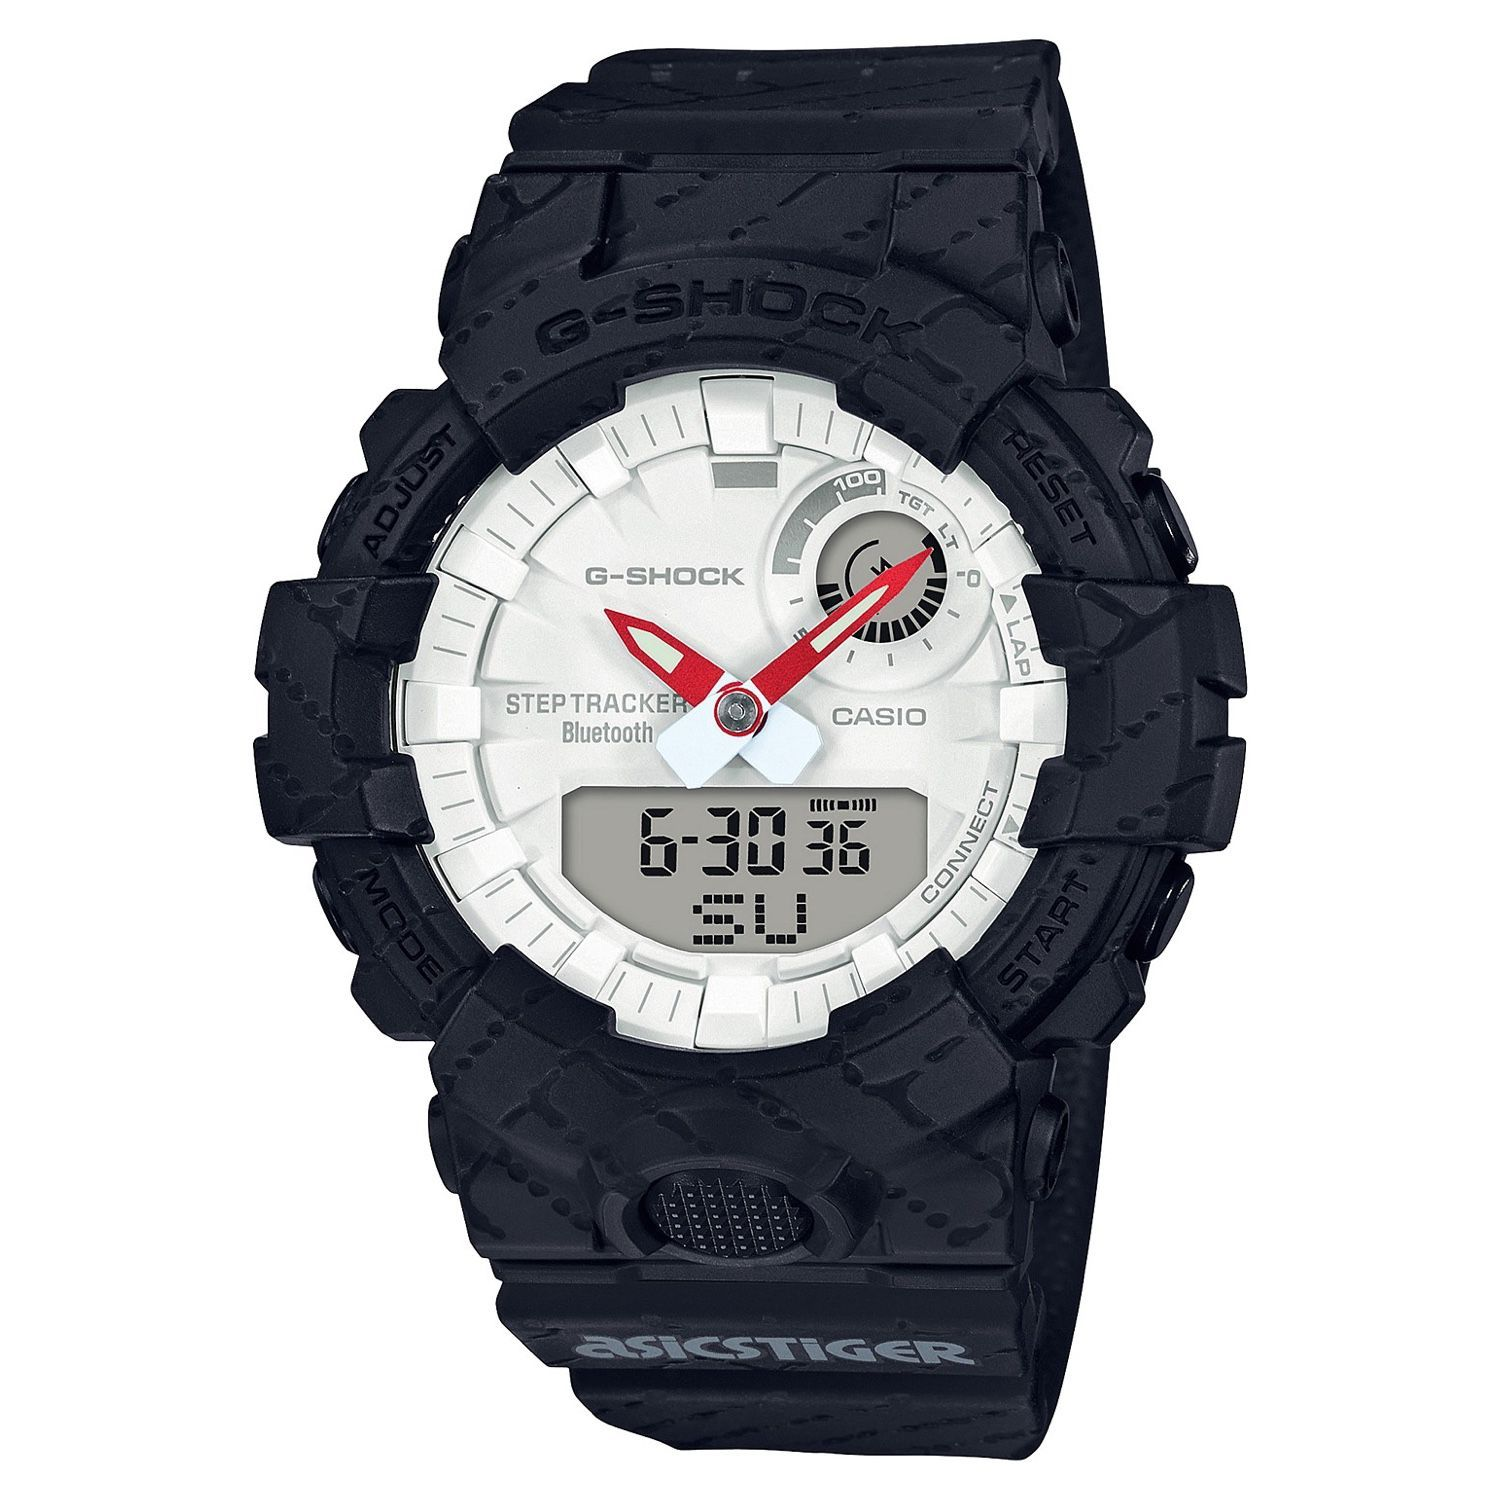 9bbef6363 11 Best G-Shock Watches to Buy in 2019 - Cool Casio G-Shock Watches